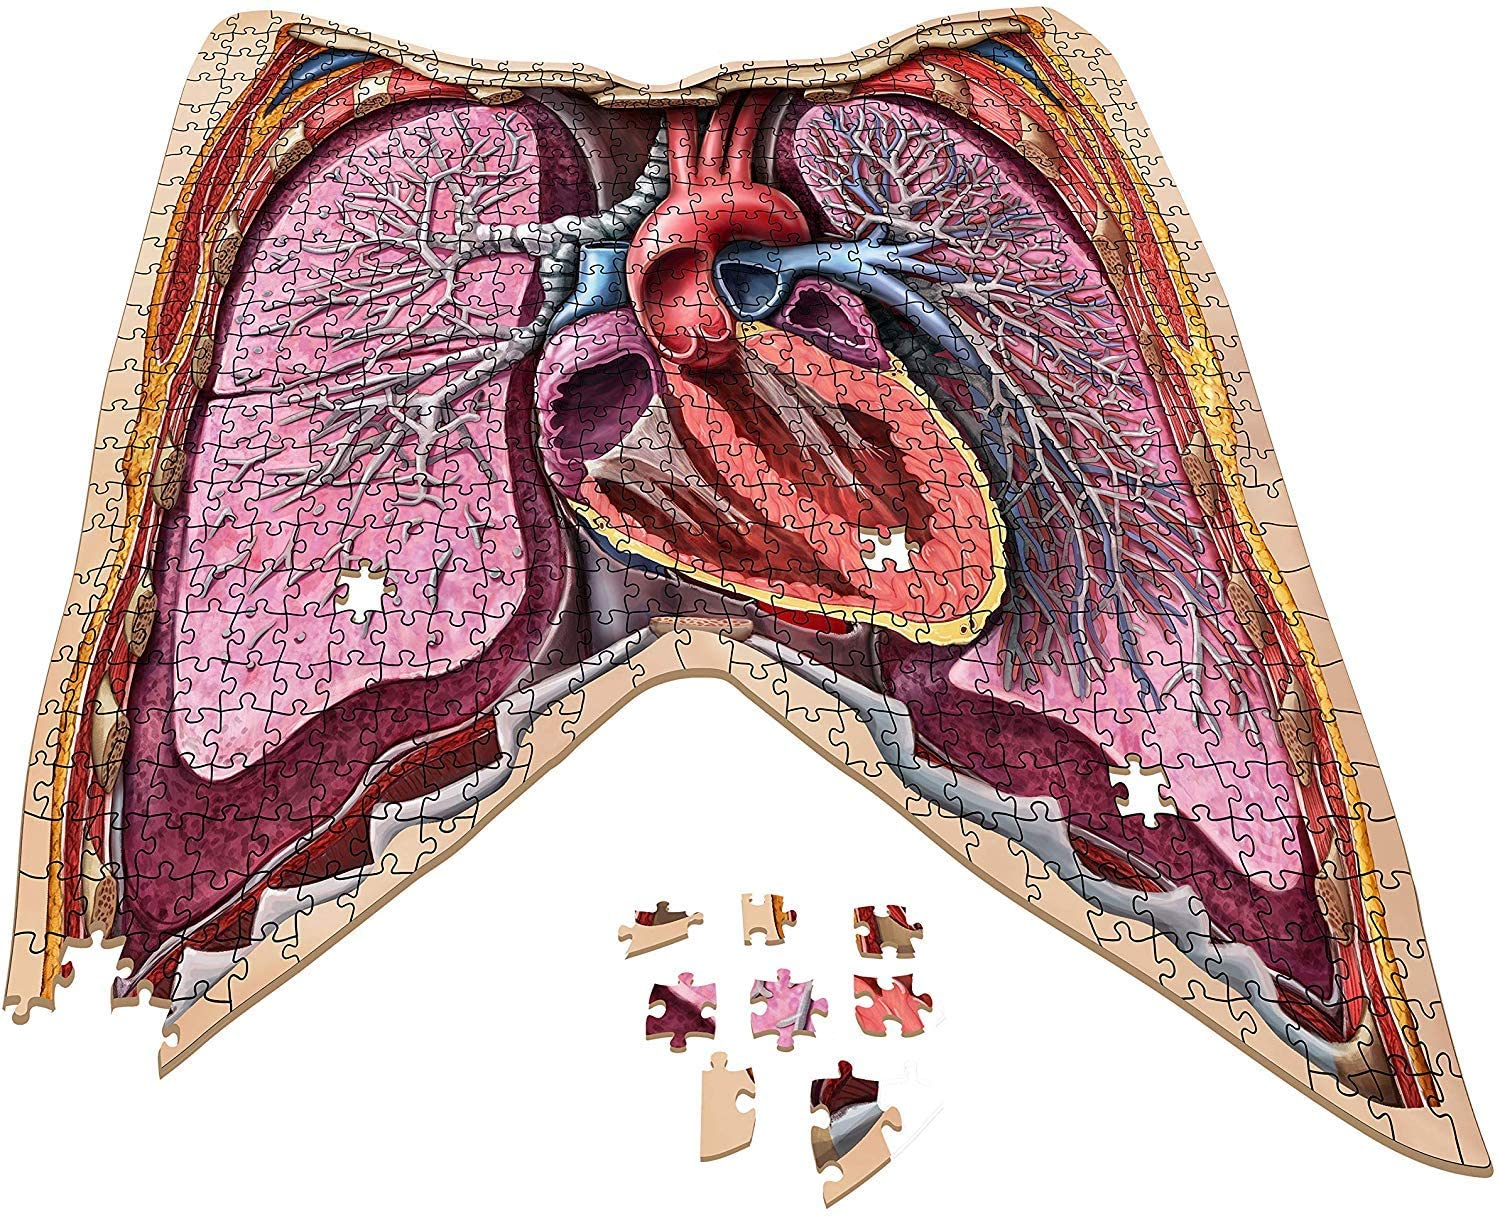 Genius Games Dr. Livingston's Human Anatomy Jigsaw Puzzles - The Thorax | Battle Bliss